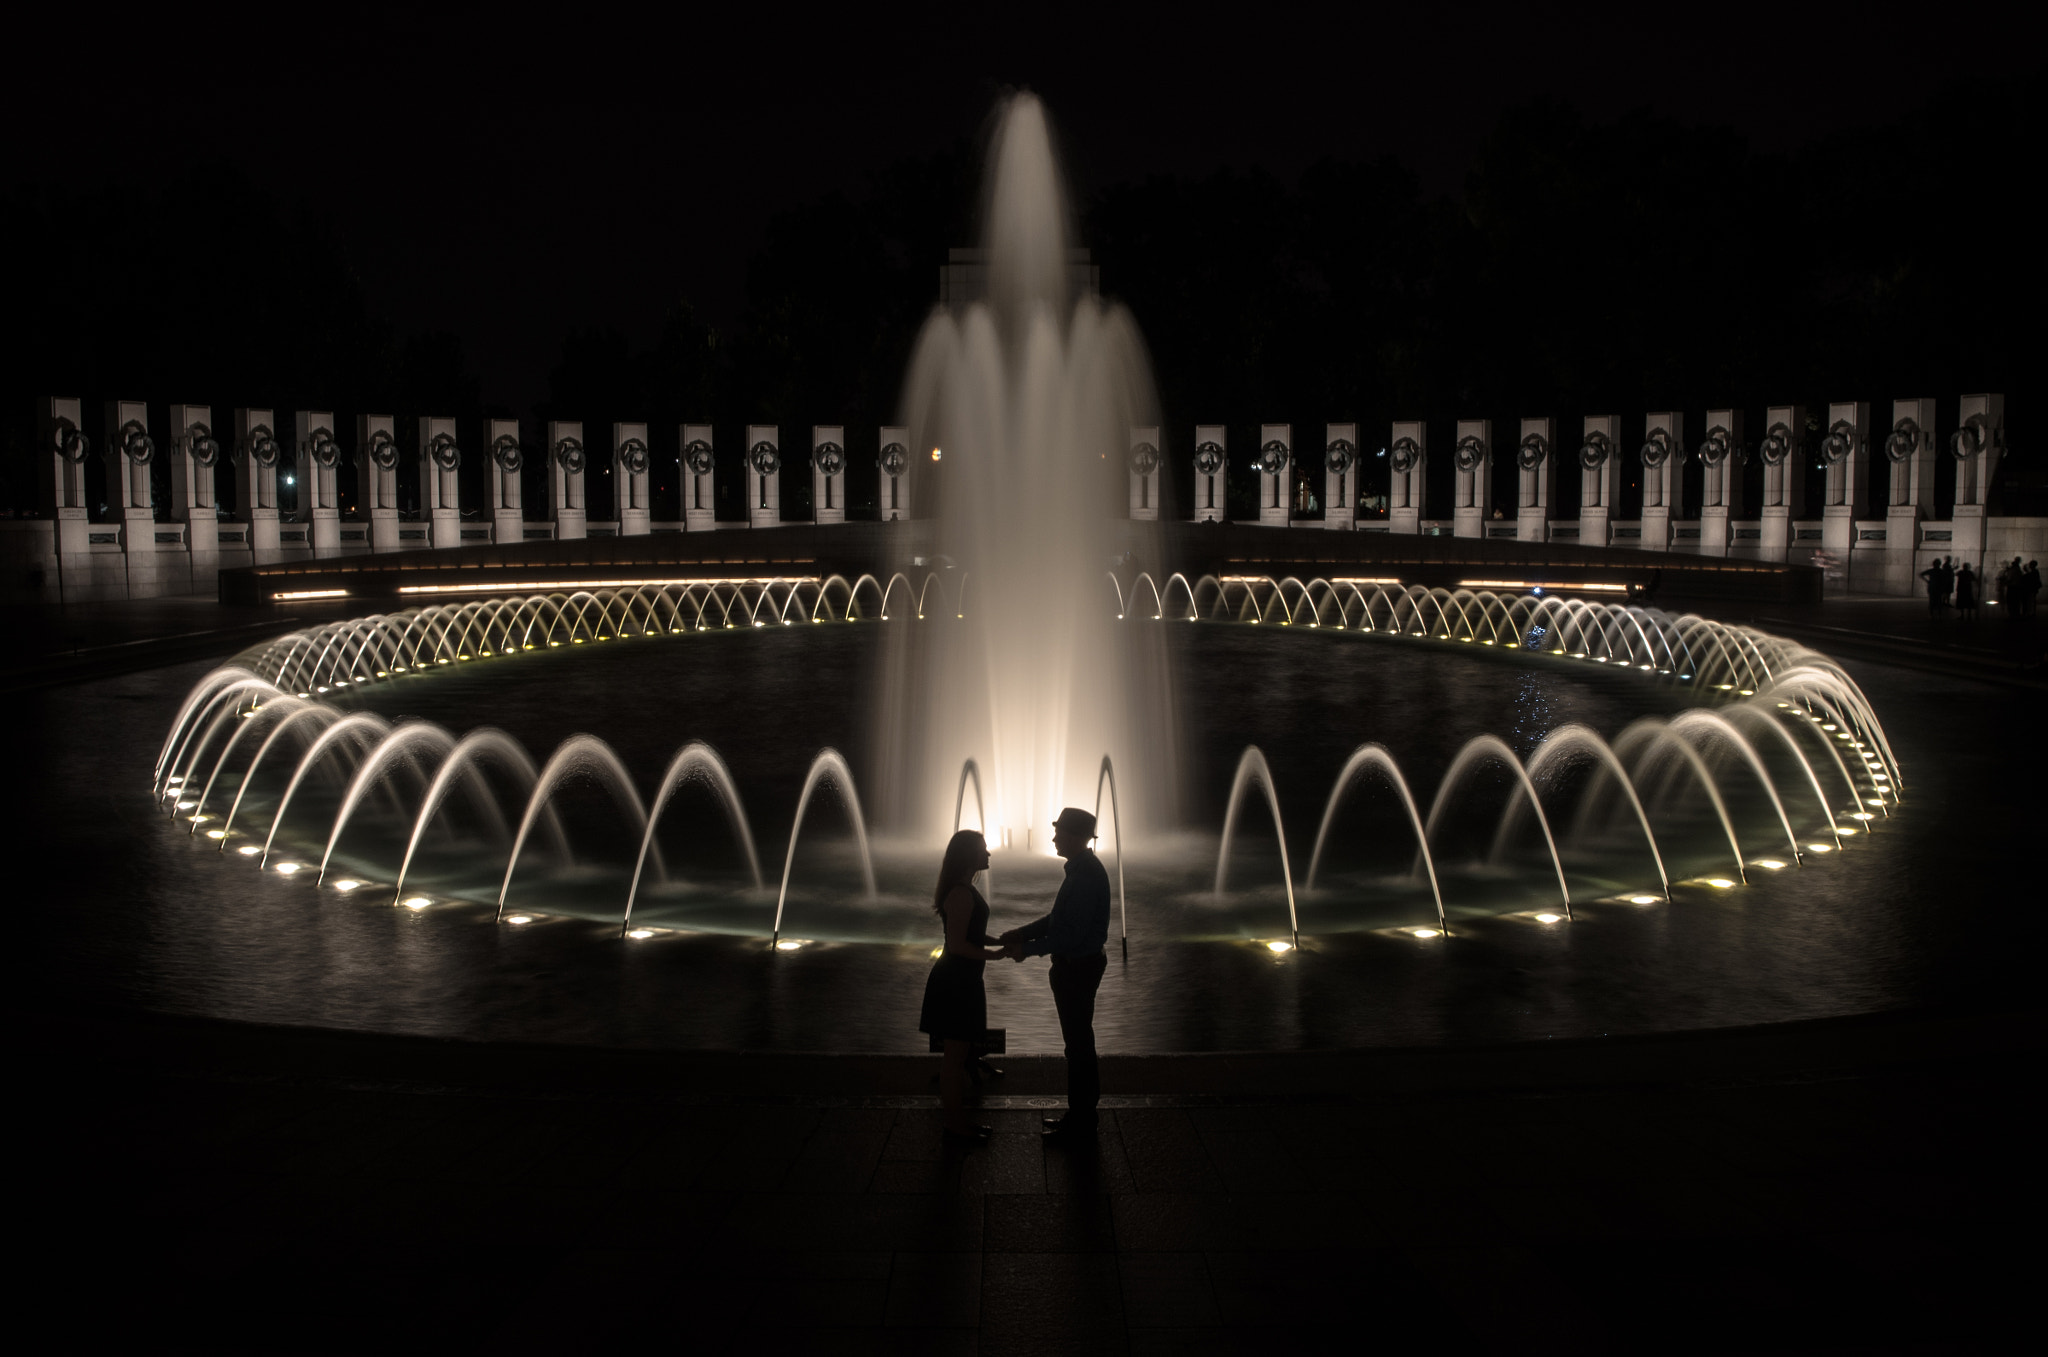 Photograph Love at the WWII Memorial by Jimmy Daly on 500px